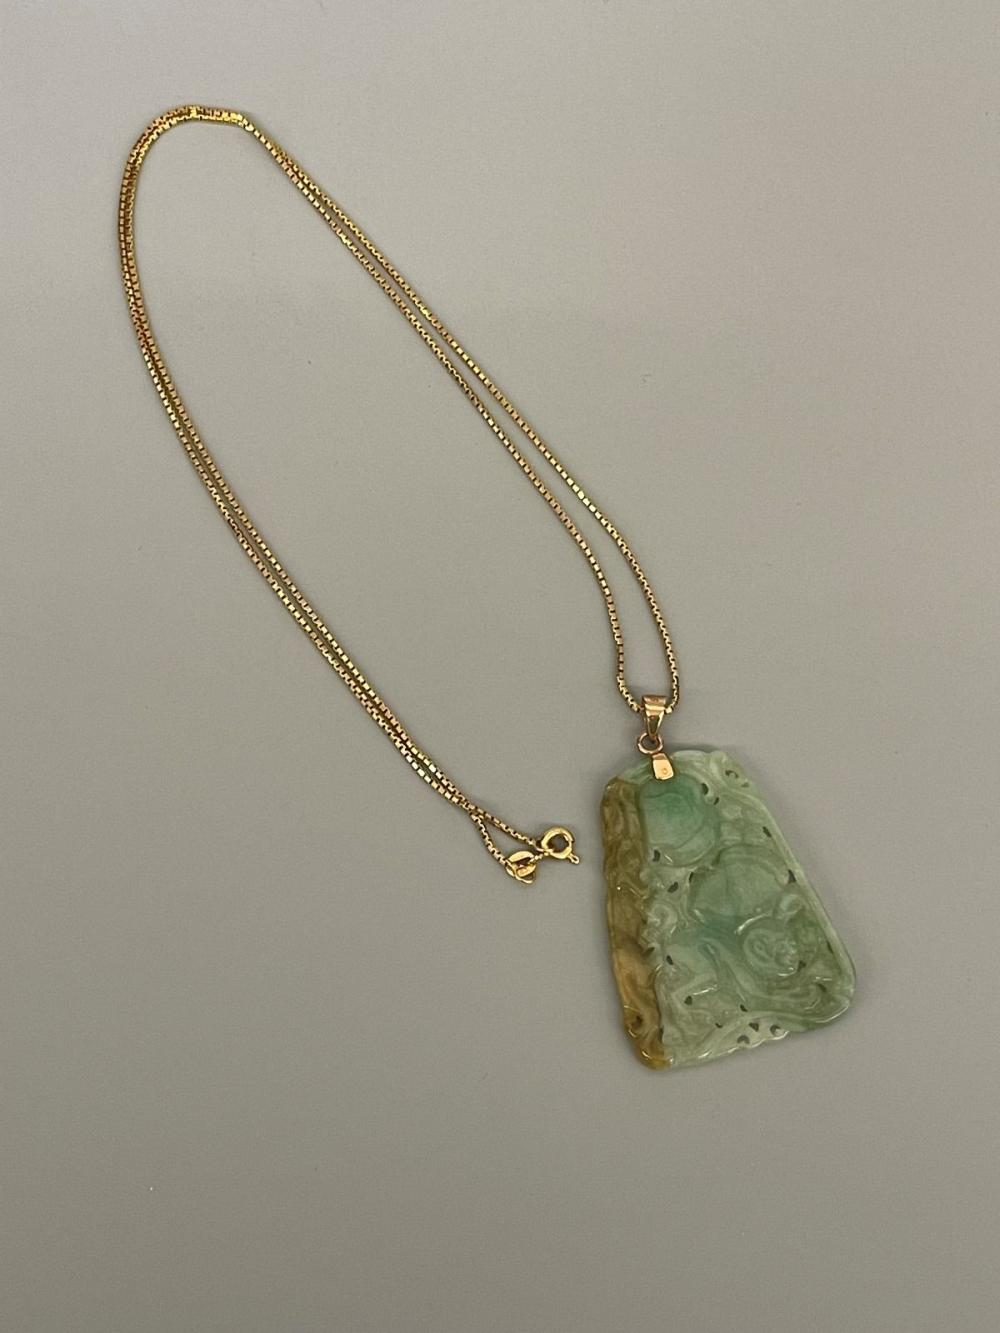 14k Yellow Gold Chain with Jade Pendant